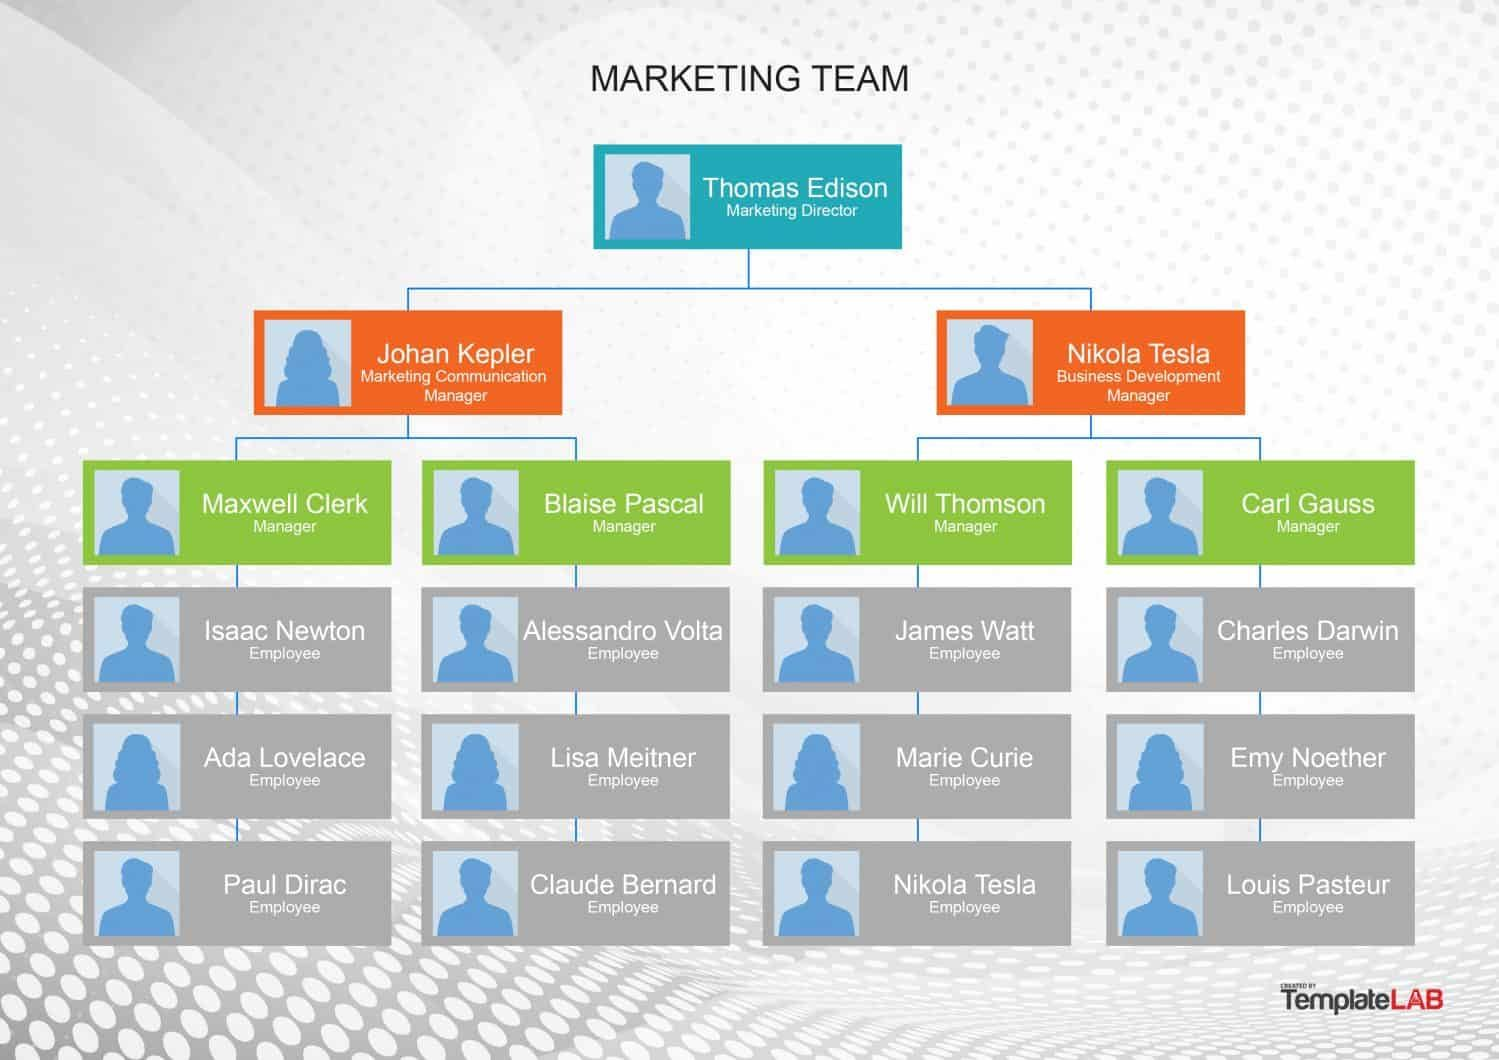 40 Organizational Chart Templates Word, Excel, Powerpoint with ...